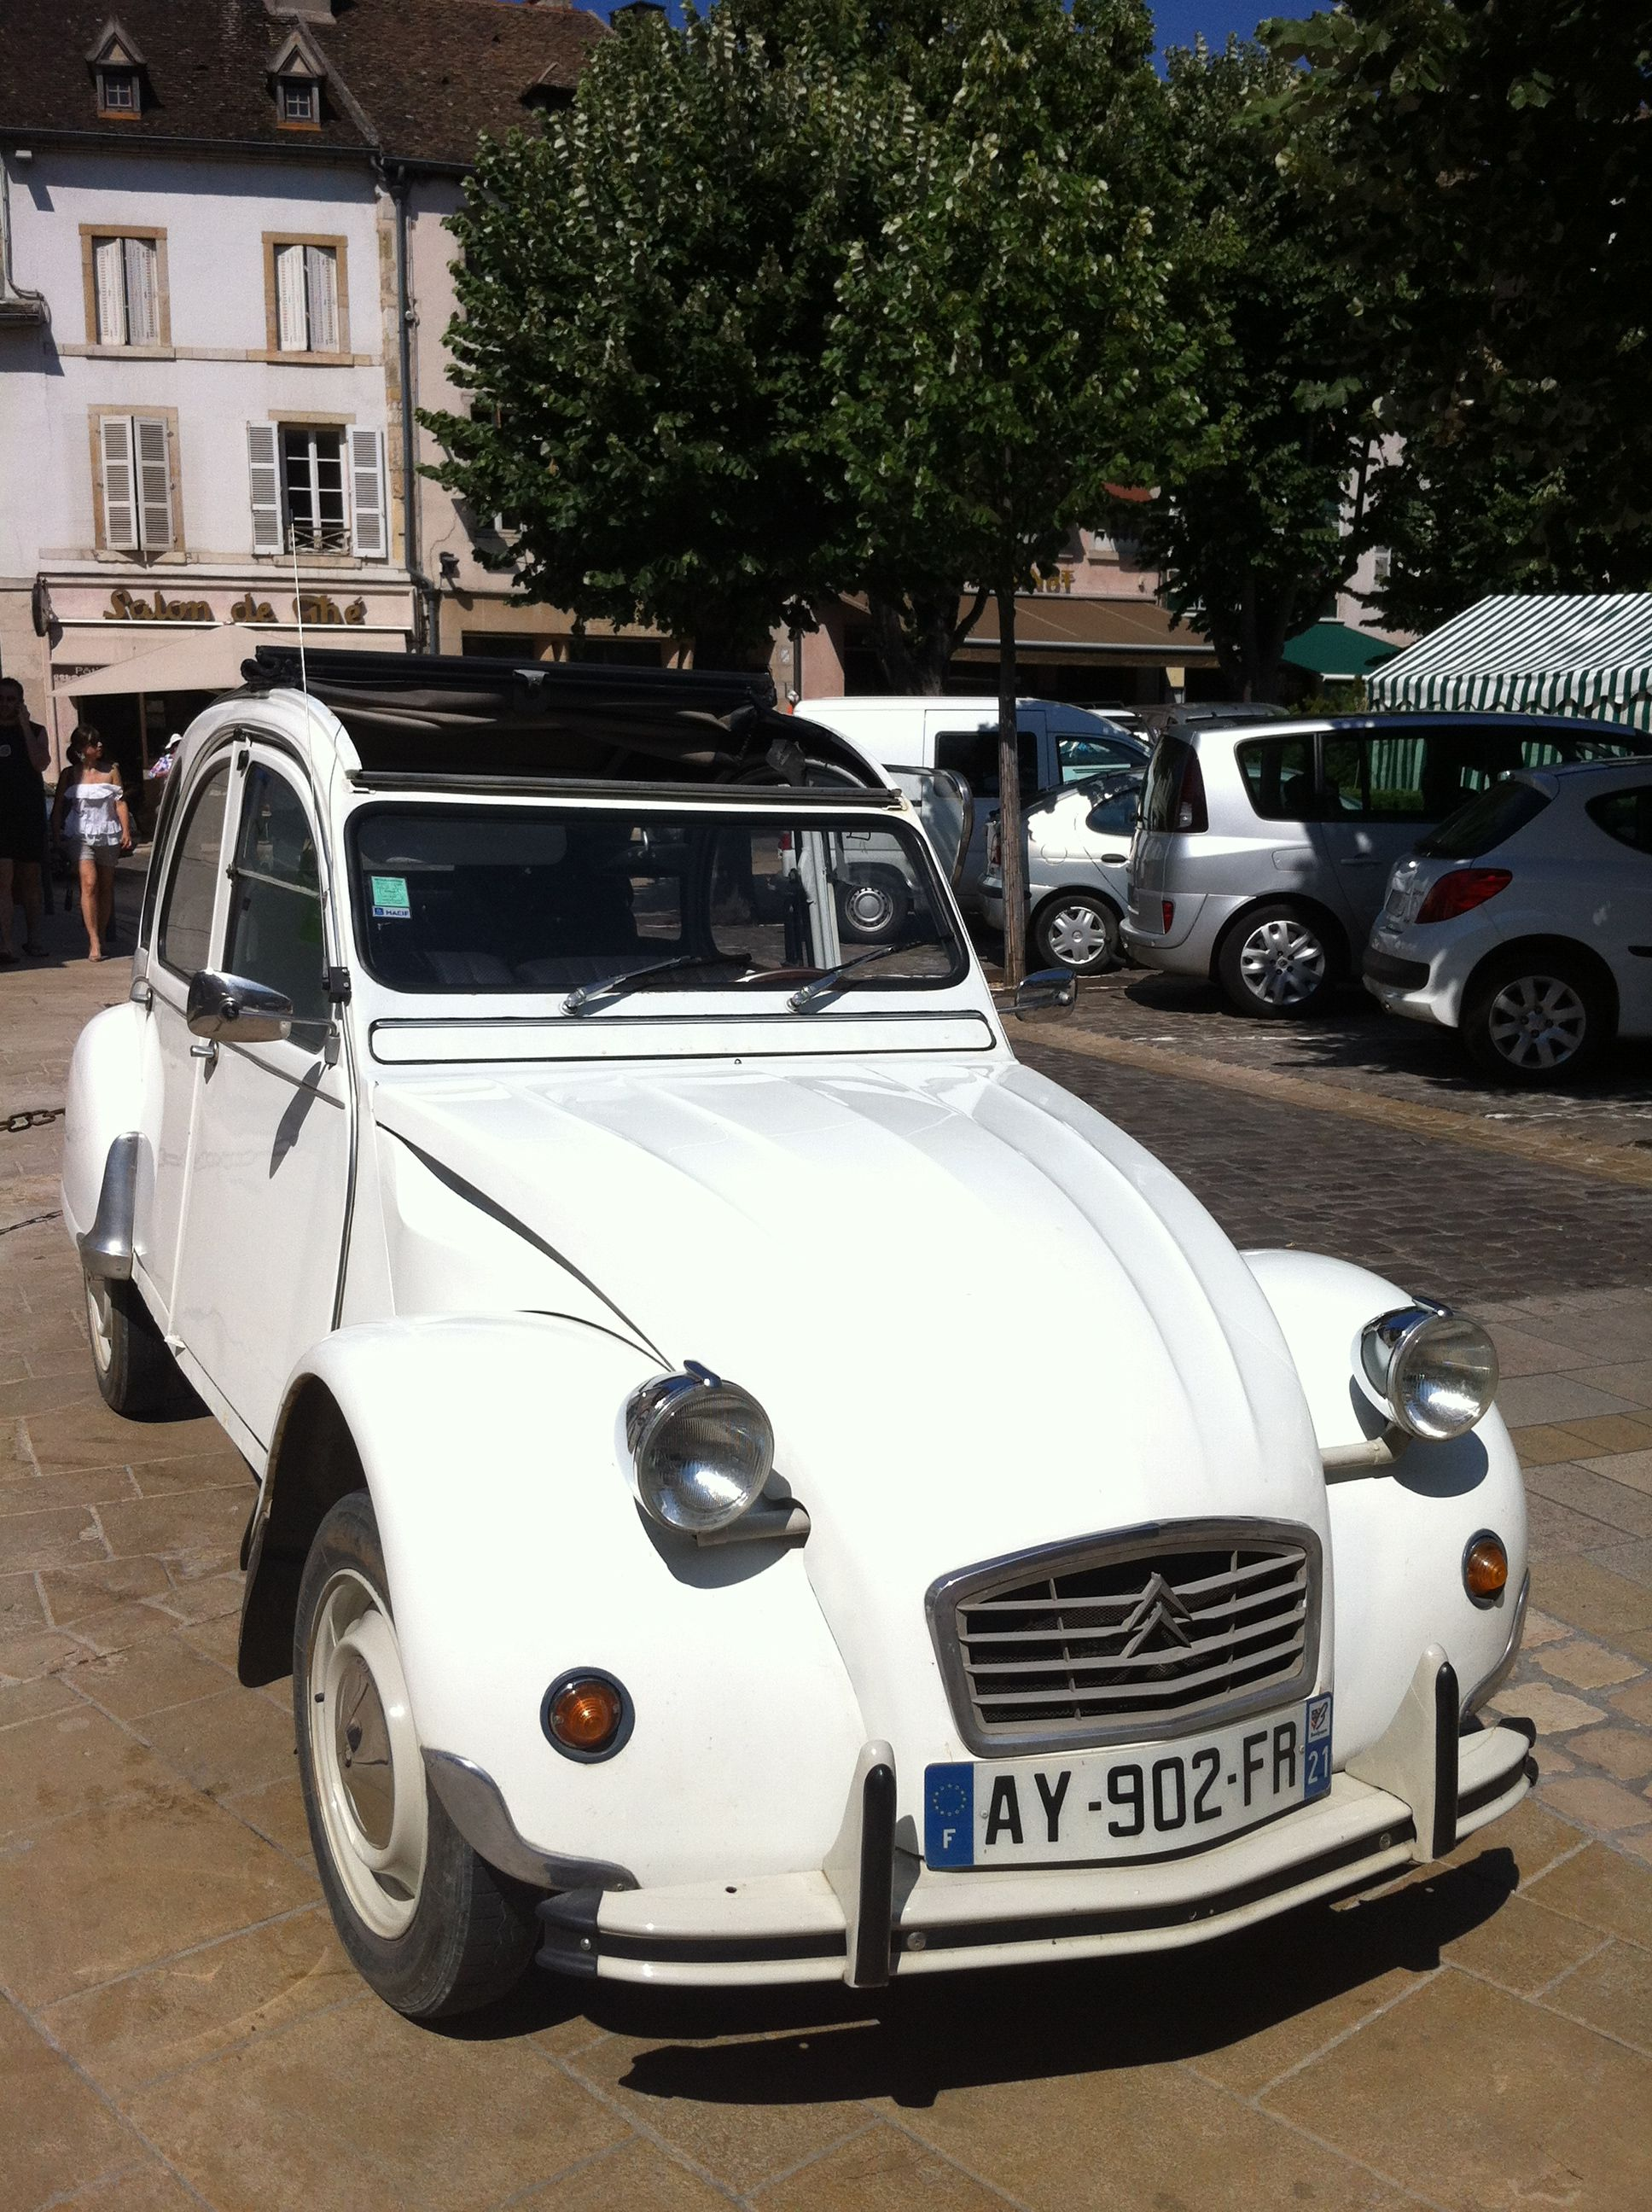 Snapped This Shining White Convertible 2cv In Beaune Beaune Citroen French Countryside